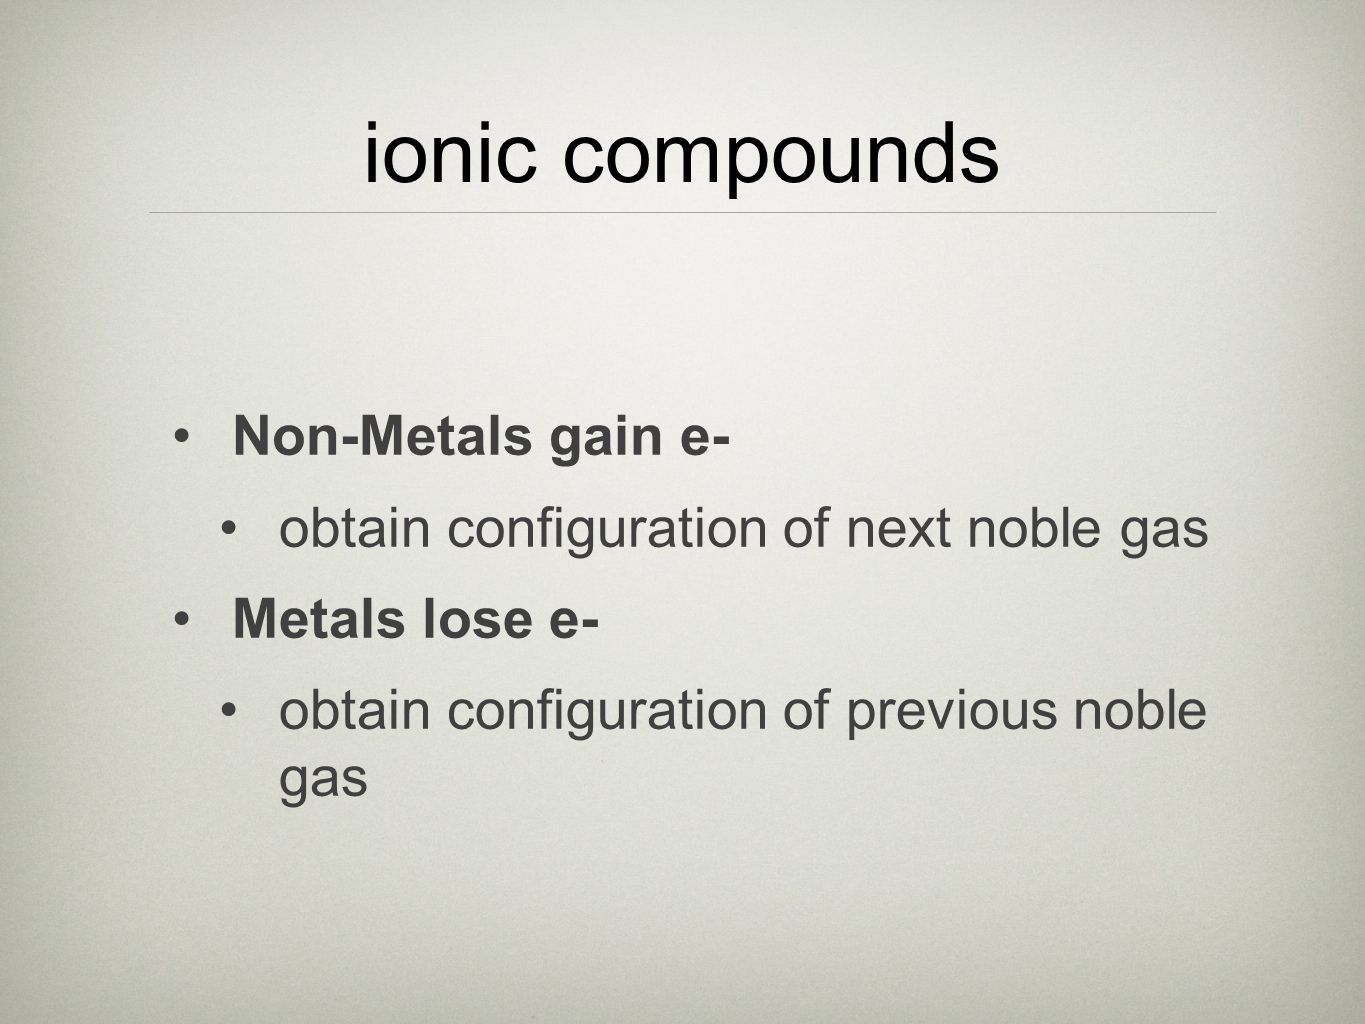 ionic compounds Non-Metals gain e-